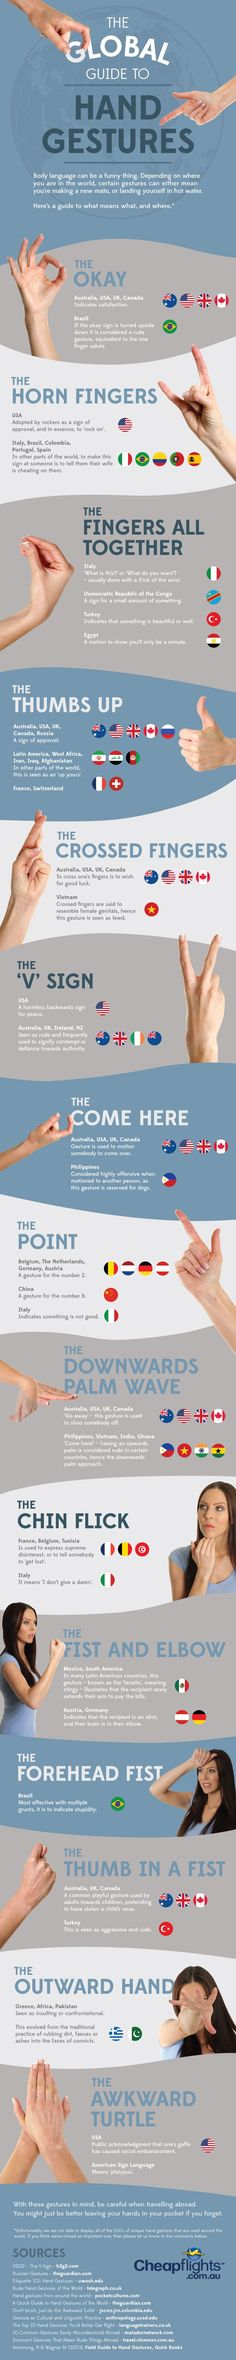 Infographic: The Global Guide to Hand Gestures http://www.huffingtonpost.com/2014/03/17/the-global-guide-to-hand-_n_4956860.html?ncid=fcbklnkushpmg00000063 An excellent guide for our travels!